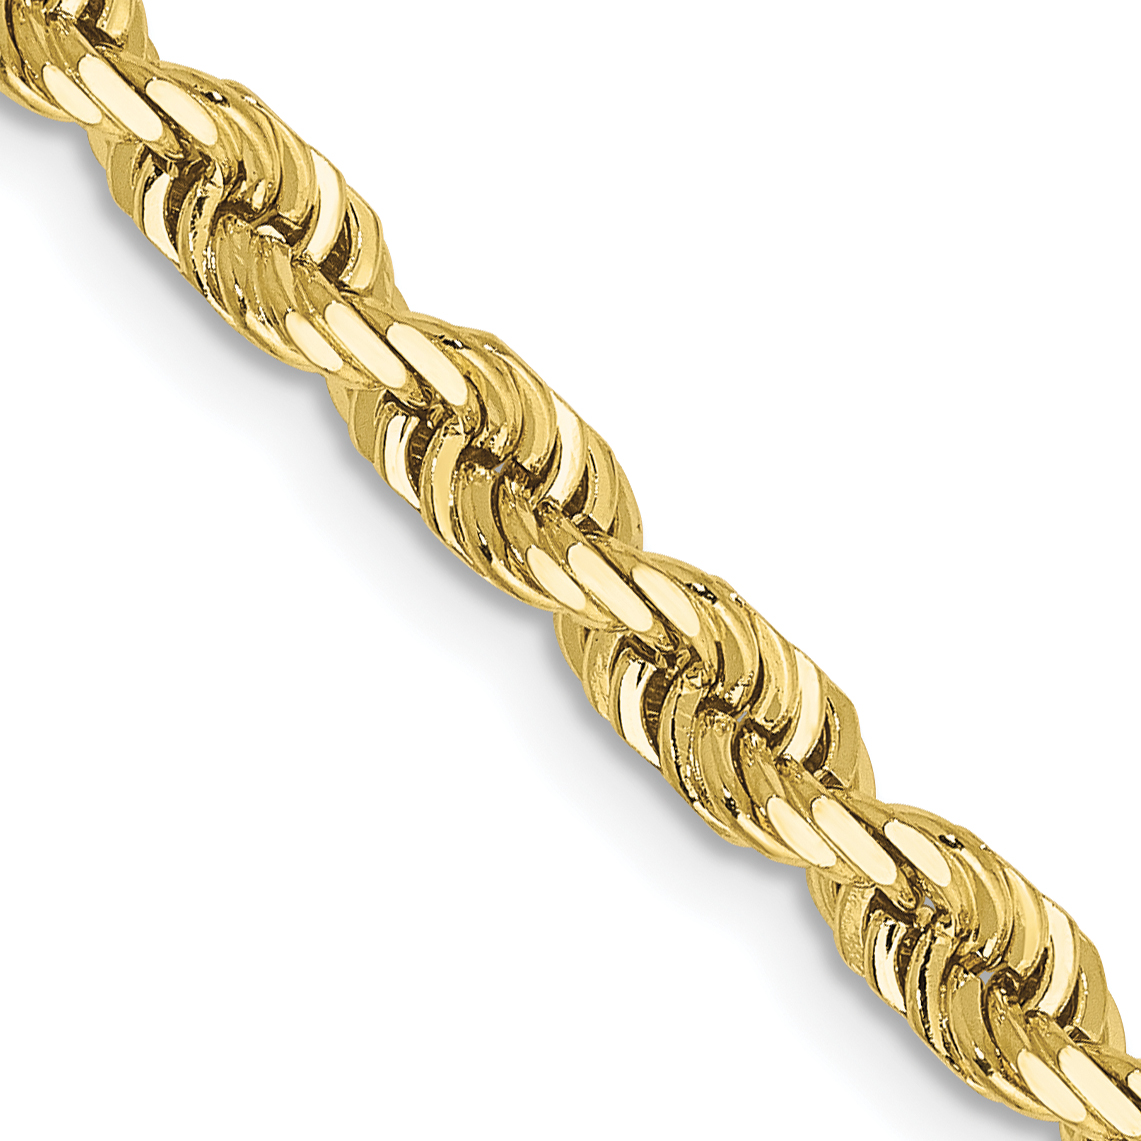 10k 4mm D/C Quadruple Rope Chain. Weight: 18.1,  Length: 20